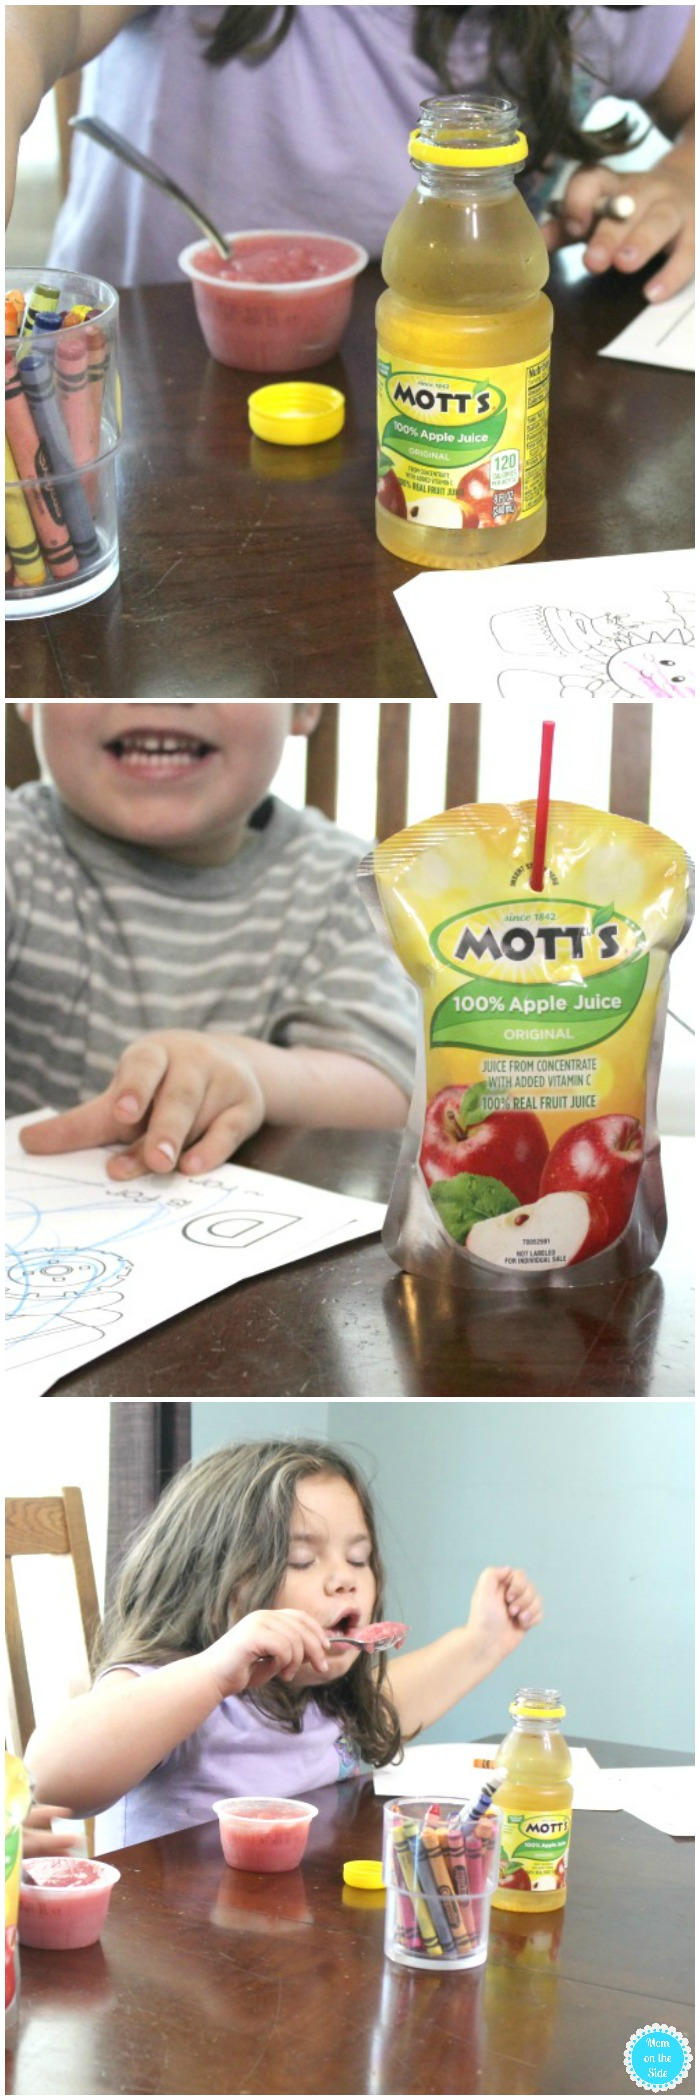 Mott's Rebate for Growth Chart